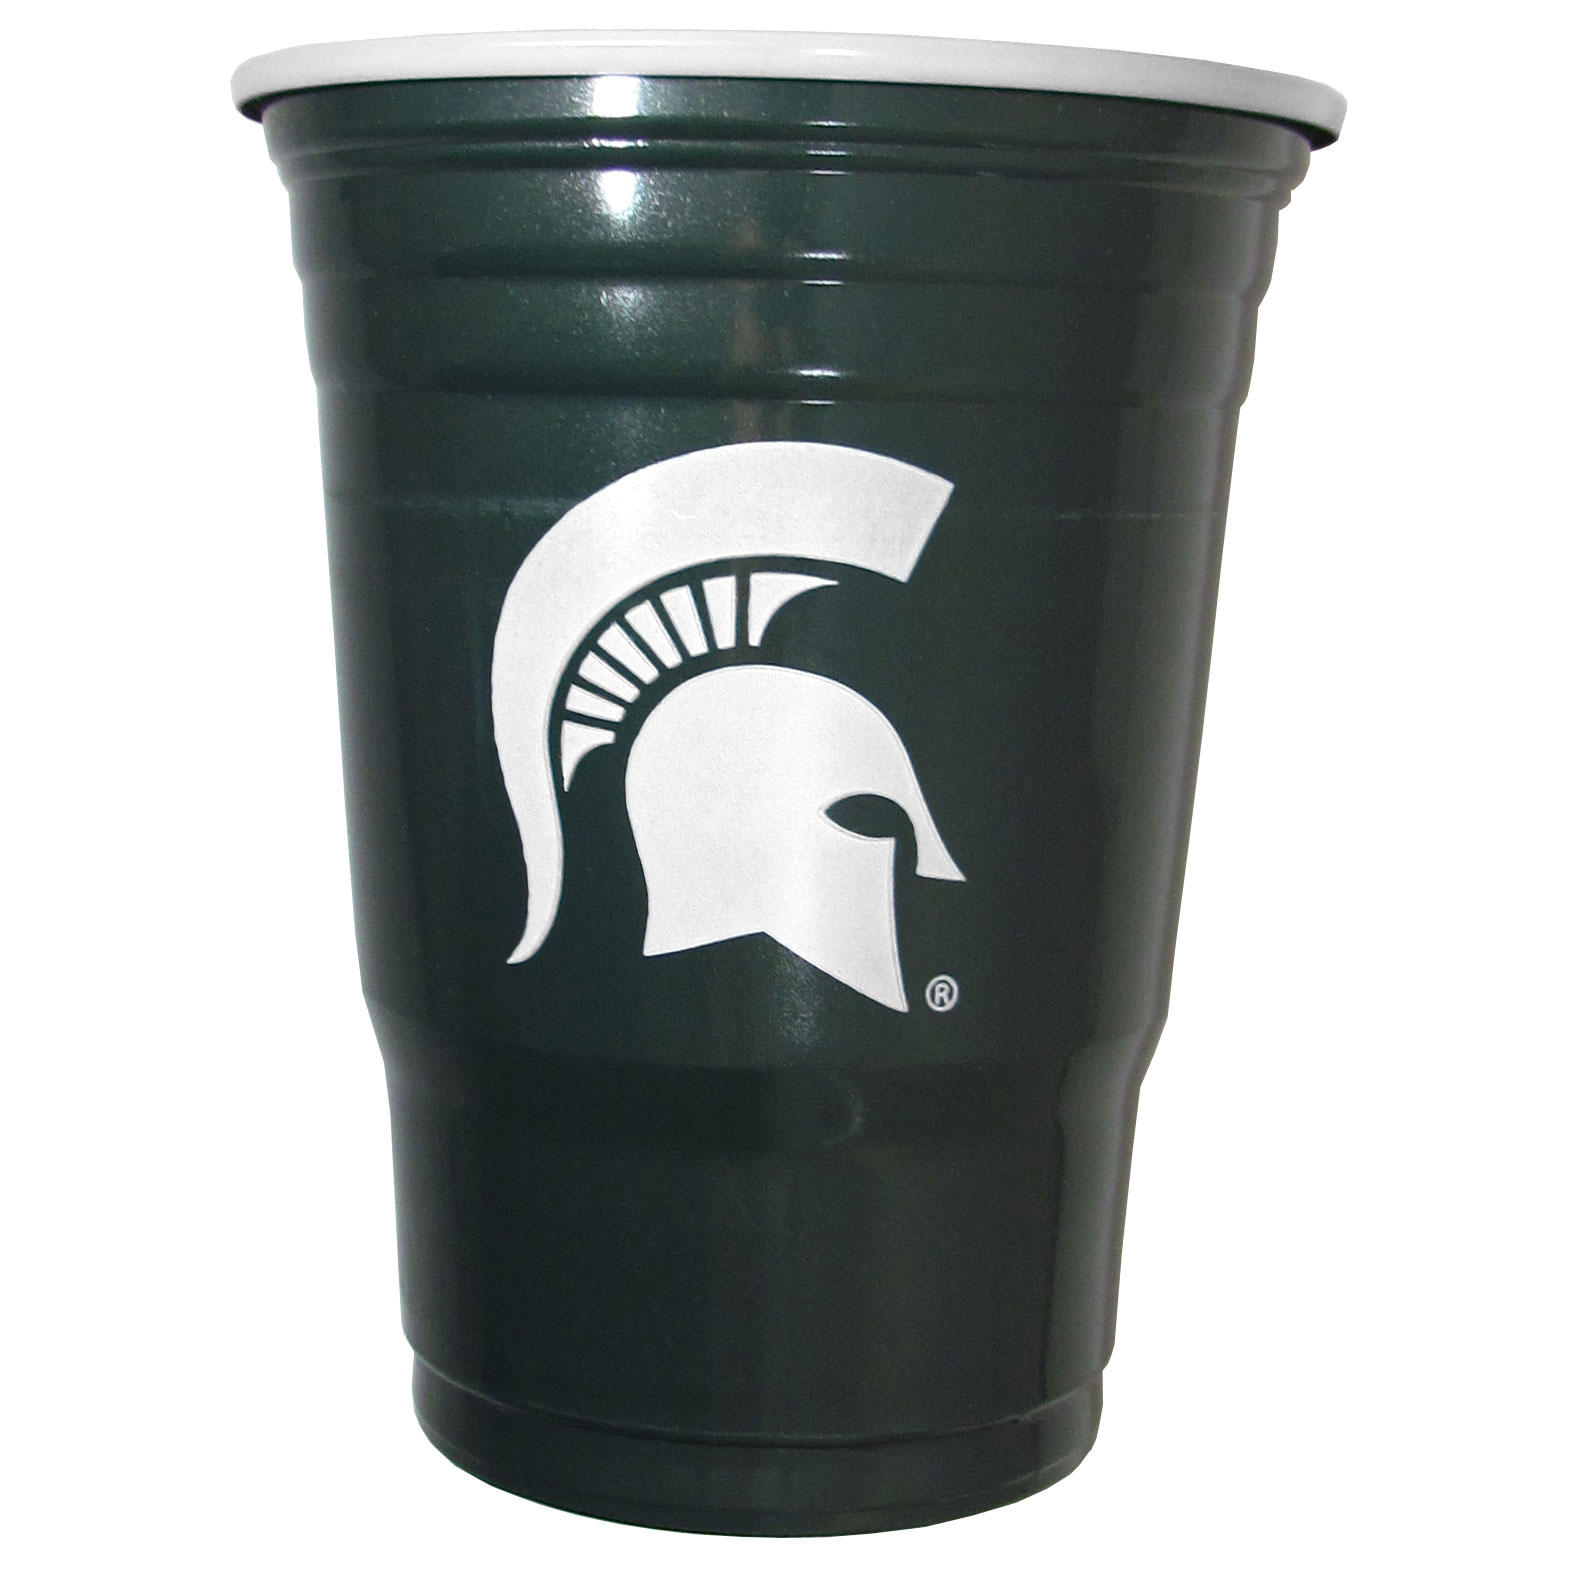 Michigan St. Spartans Plastic Game Day Cups - Our 18 ounce game day cups are what every tailgating or backyard events needs! The cups feature a big Michigan St. Spartans logo so you can show off your team pride. The popular 18 ounce size is perfect for drinks or ping pong balls! Sold in sleeves of 18 cups.